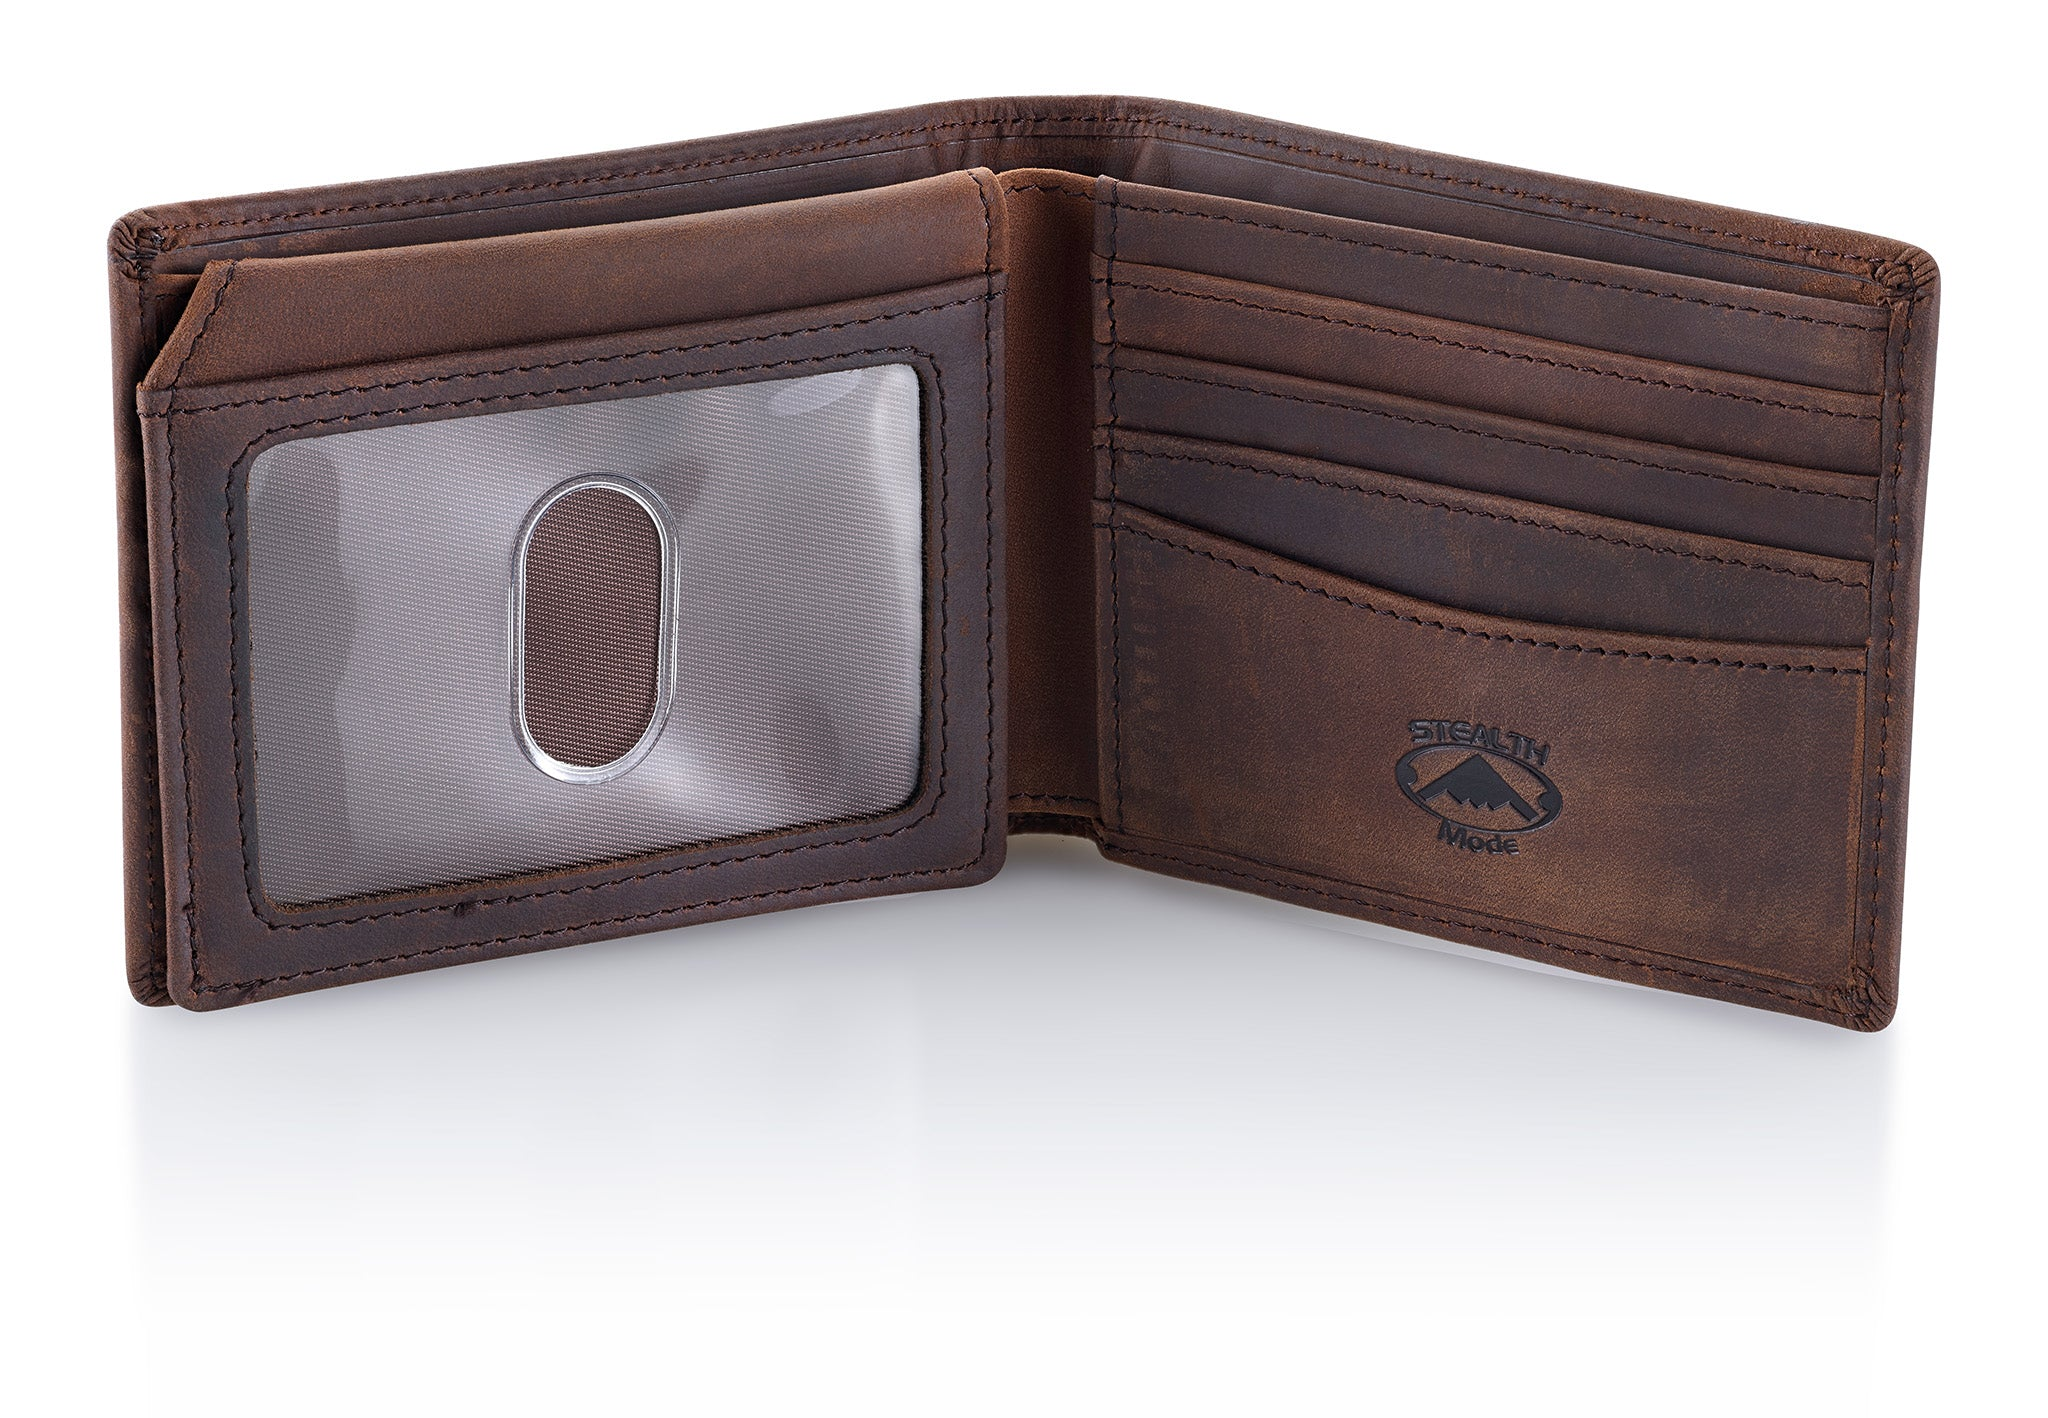 Brown Bifold Wallet for Men With ID Window and RFID Blocking